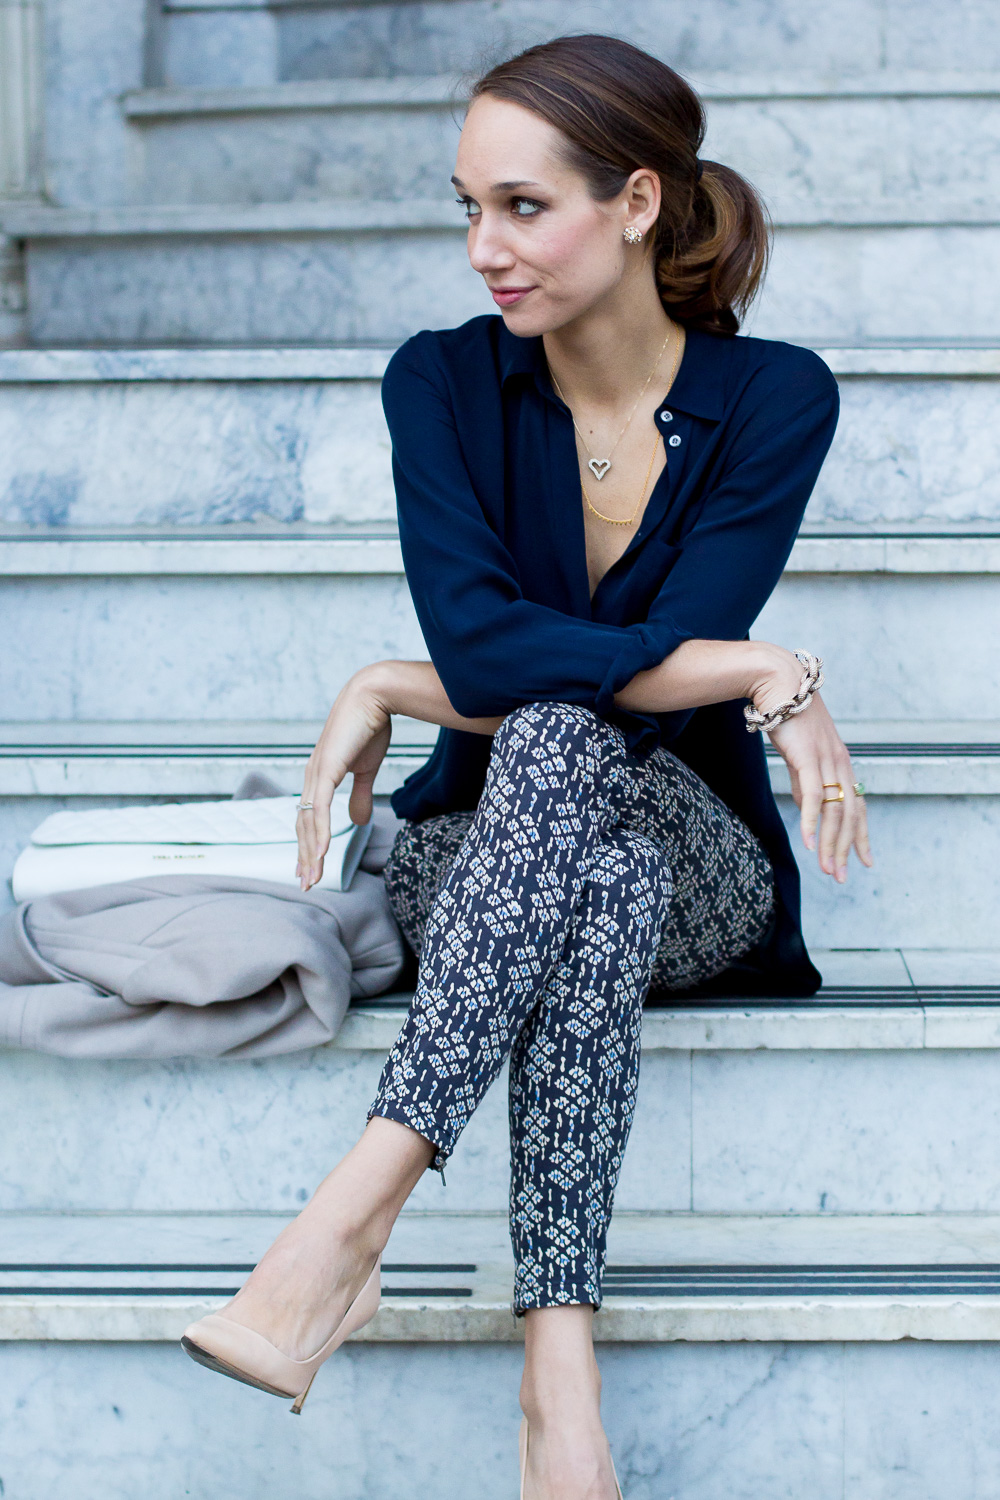 pilcro ankle jeans, vera bradley leather collection, silk blouse, quilted clutch, pilcro jeans, blair staky, the fox and she